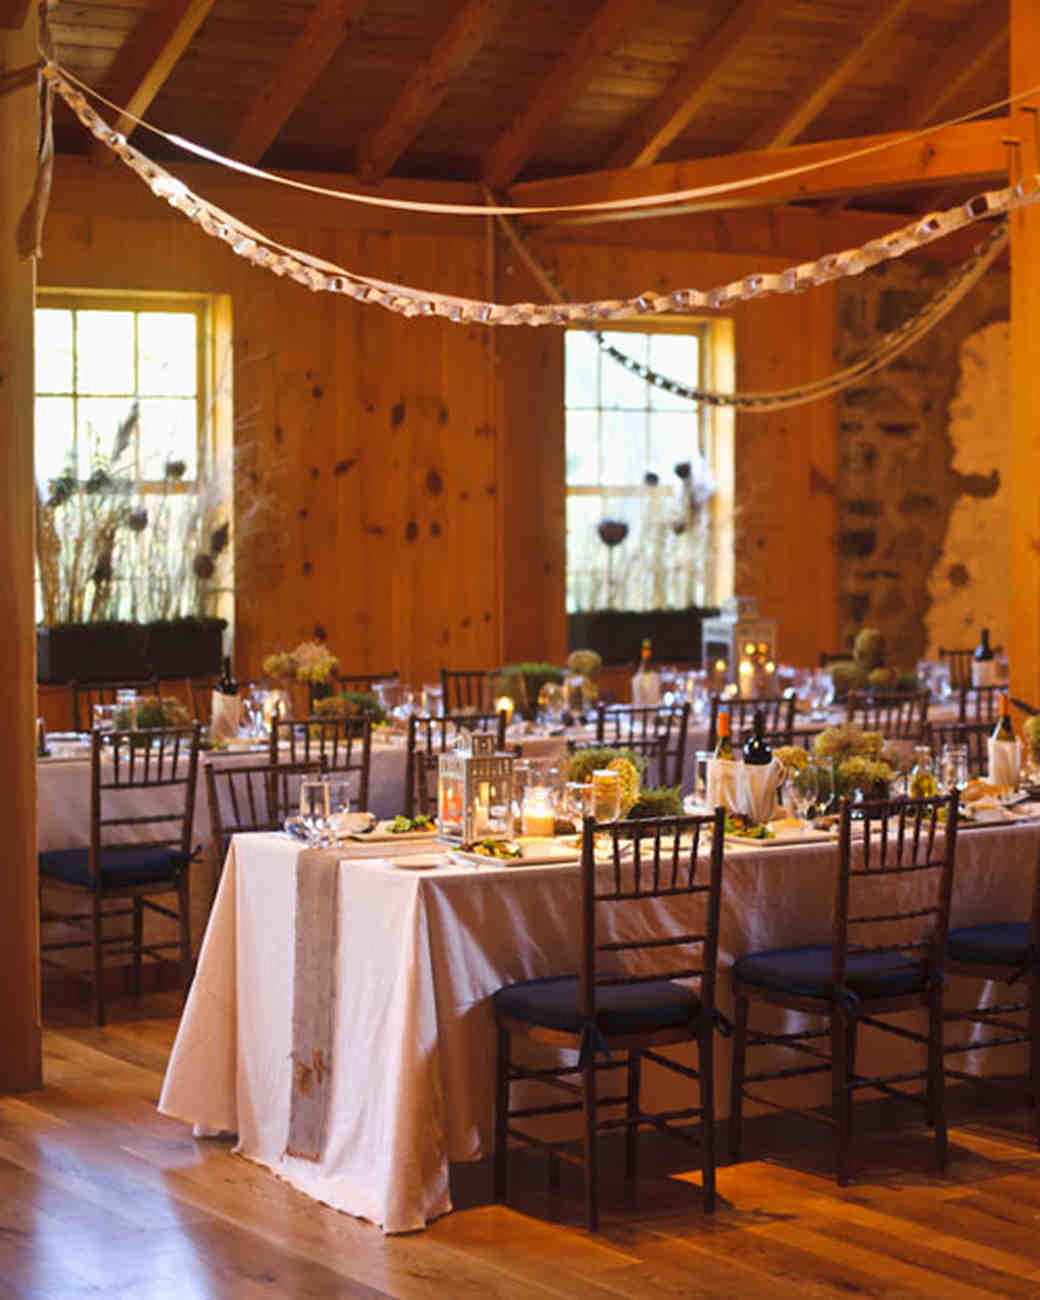 A Rustic Autumn Wedding In A Barn In Pennsylvania Martha Stewart